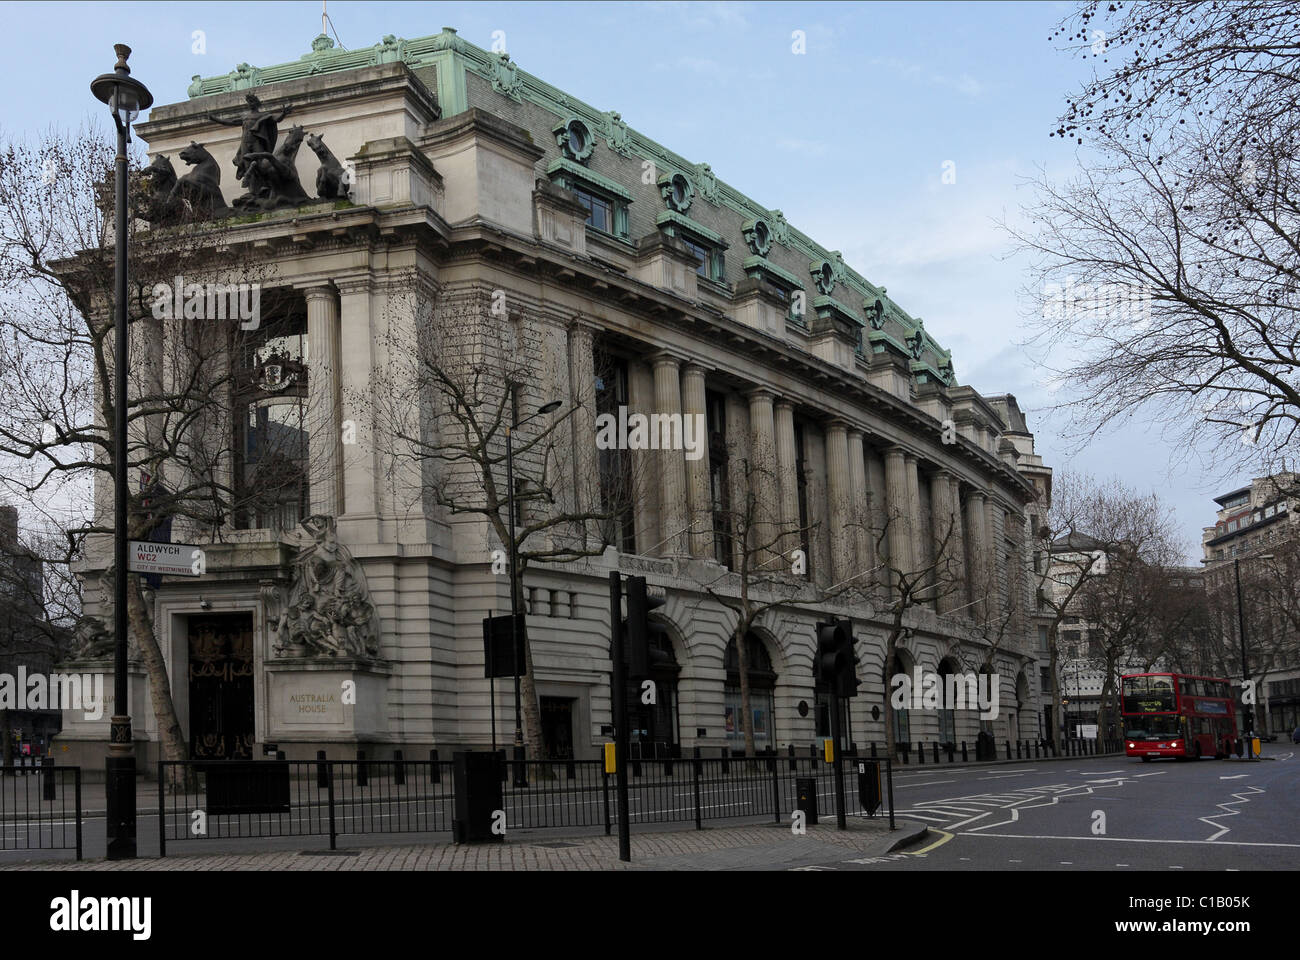 easterly aspect of australia house in the strand london C1B05K - 37+ Australia House London Pictures  Pictures